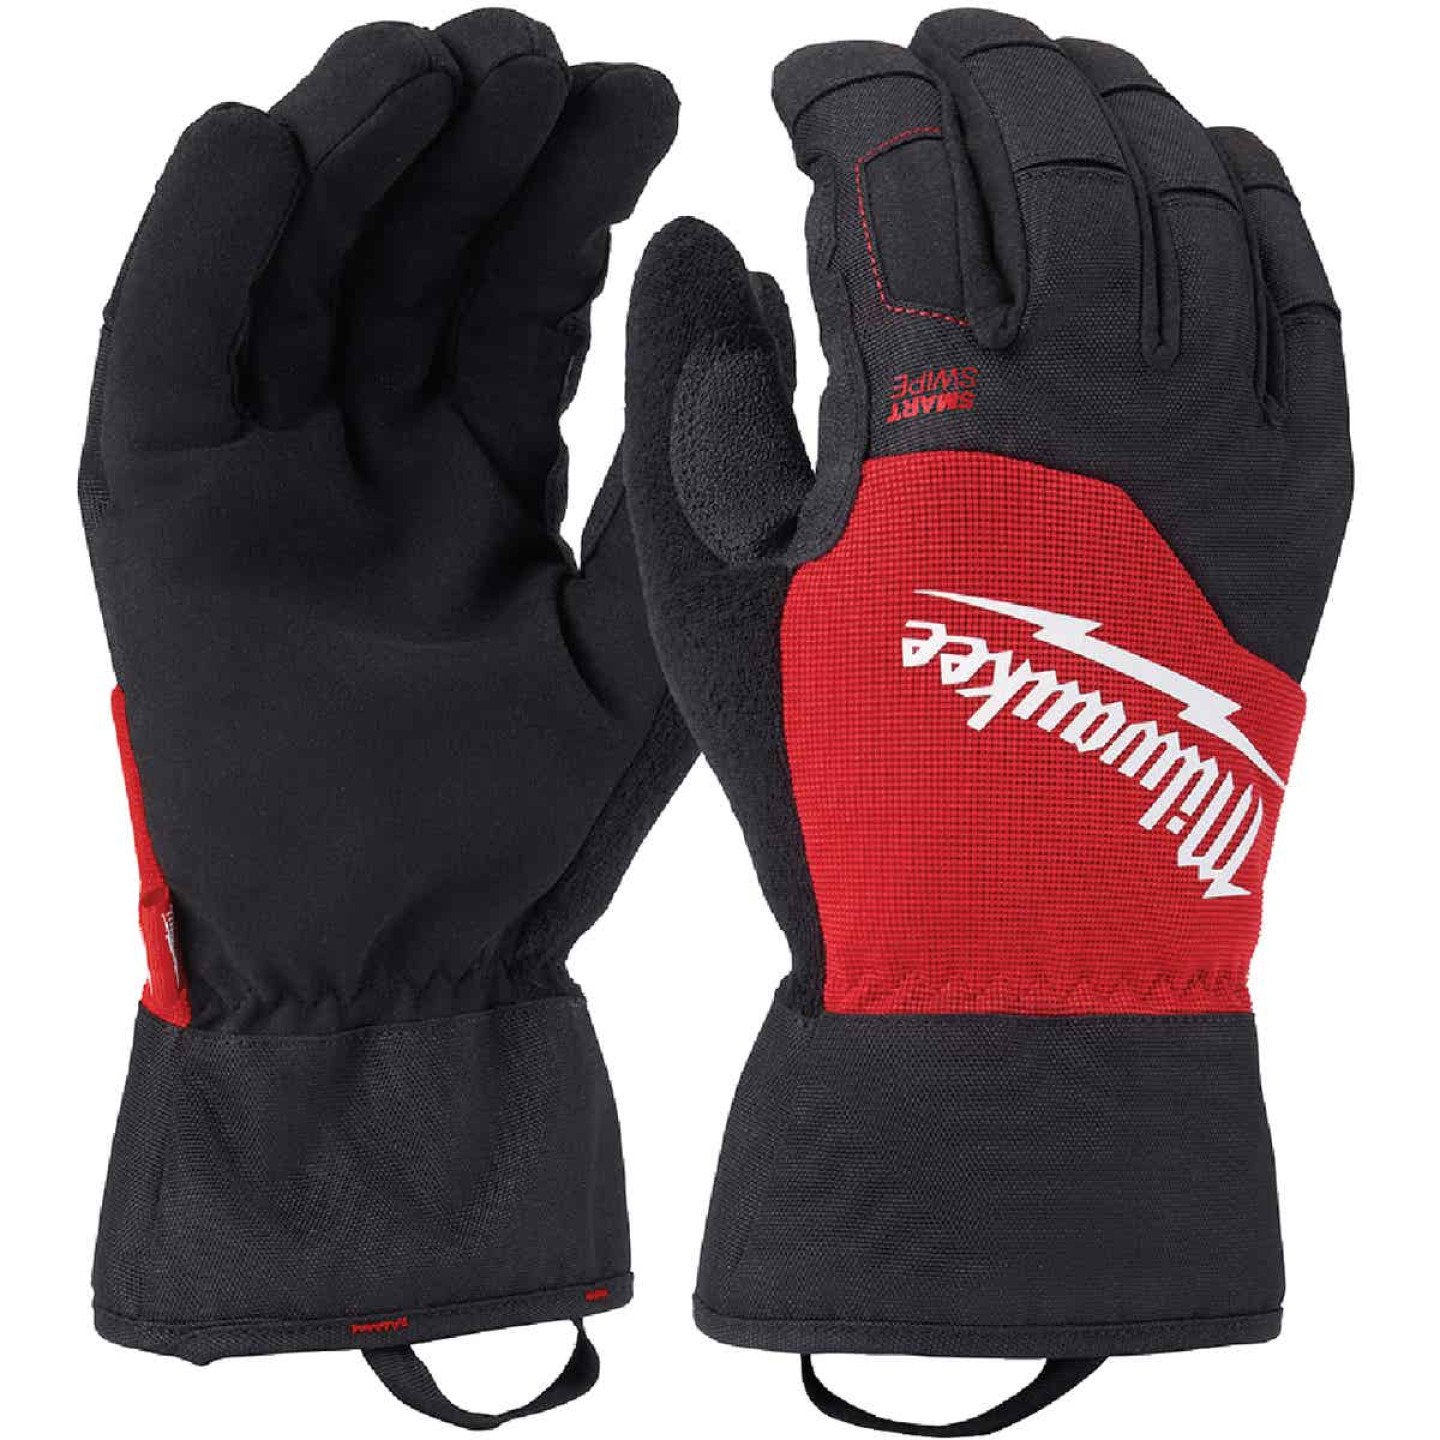 Milwaukee Men's Medium Nylon Winter Performance Glove Image 1